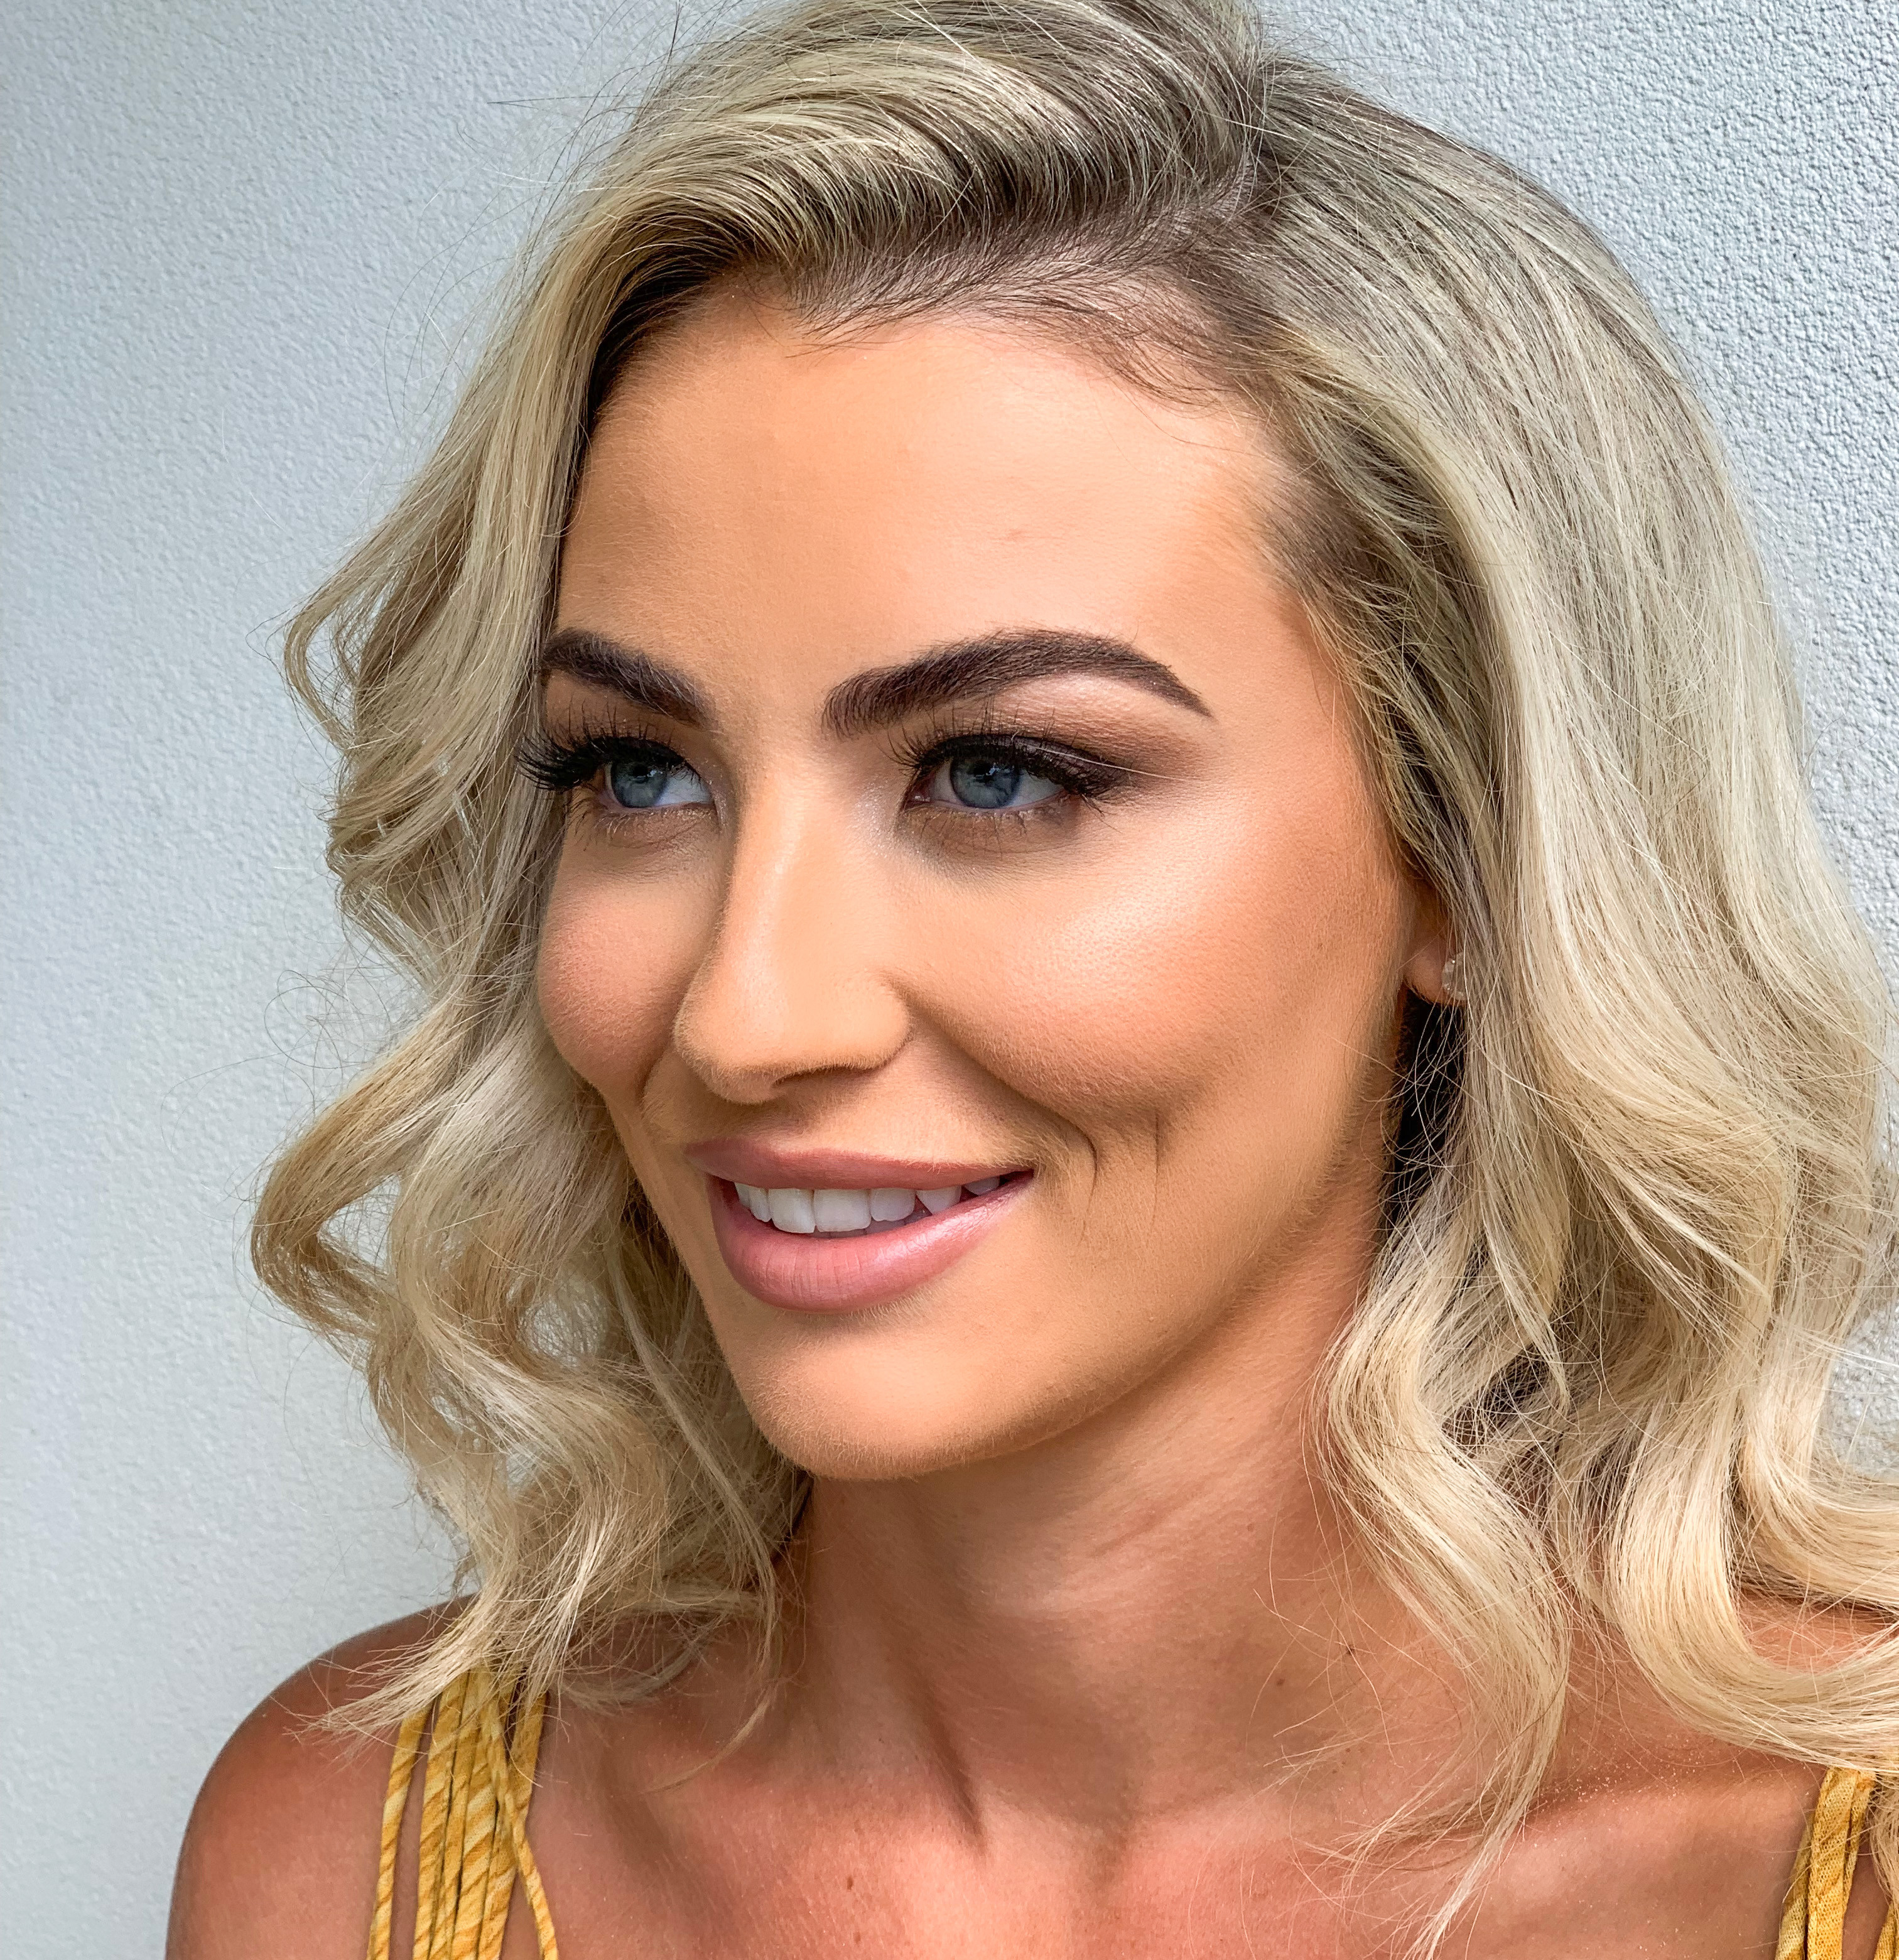 MAKEUP AND HAIR - BASIC GHD STYLING